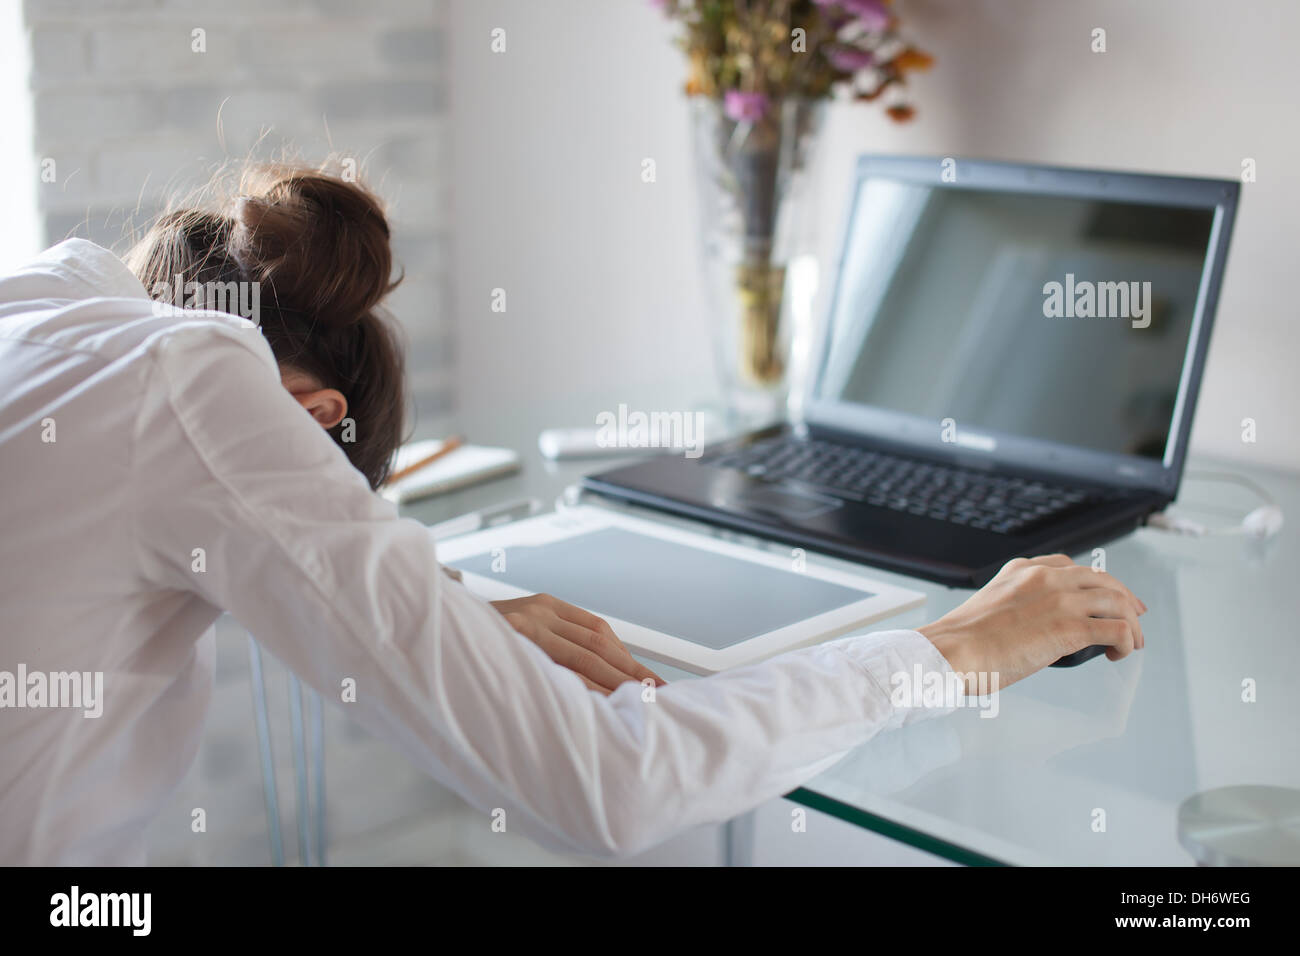 Tired woman sleeping on workplace - Stock Image